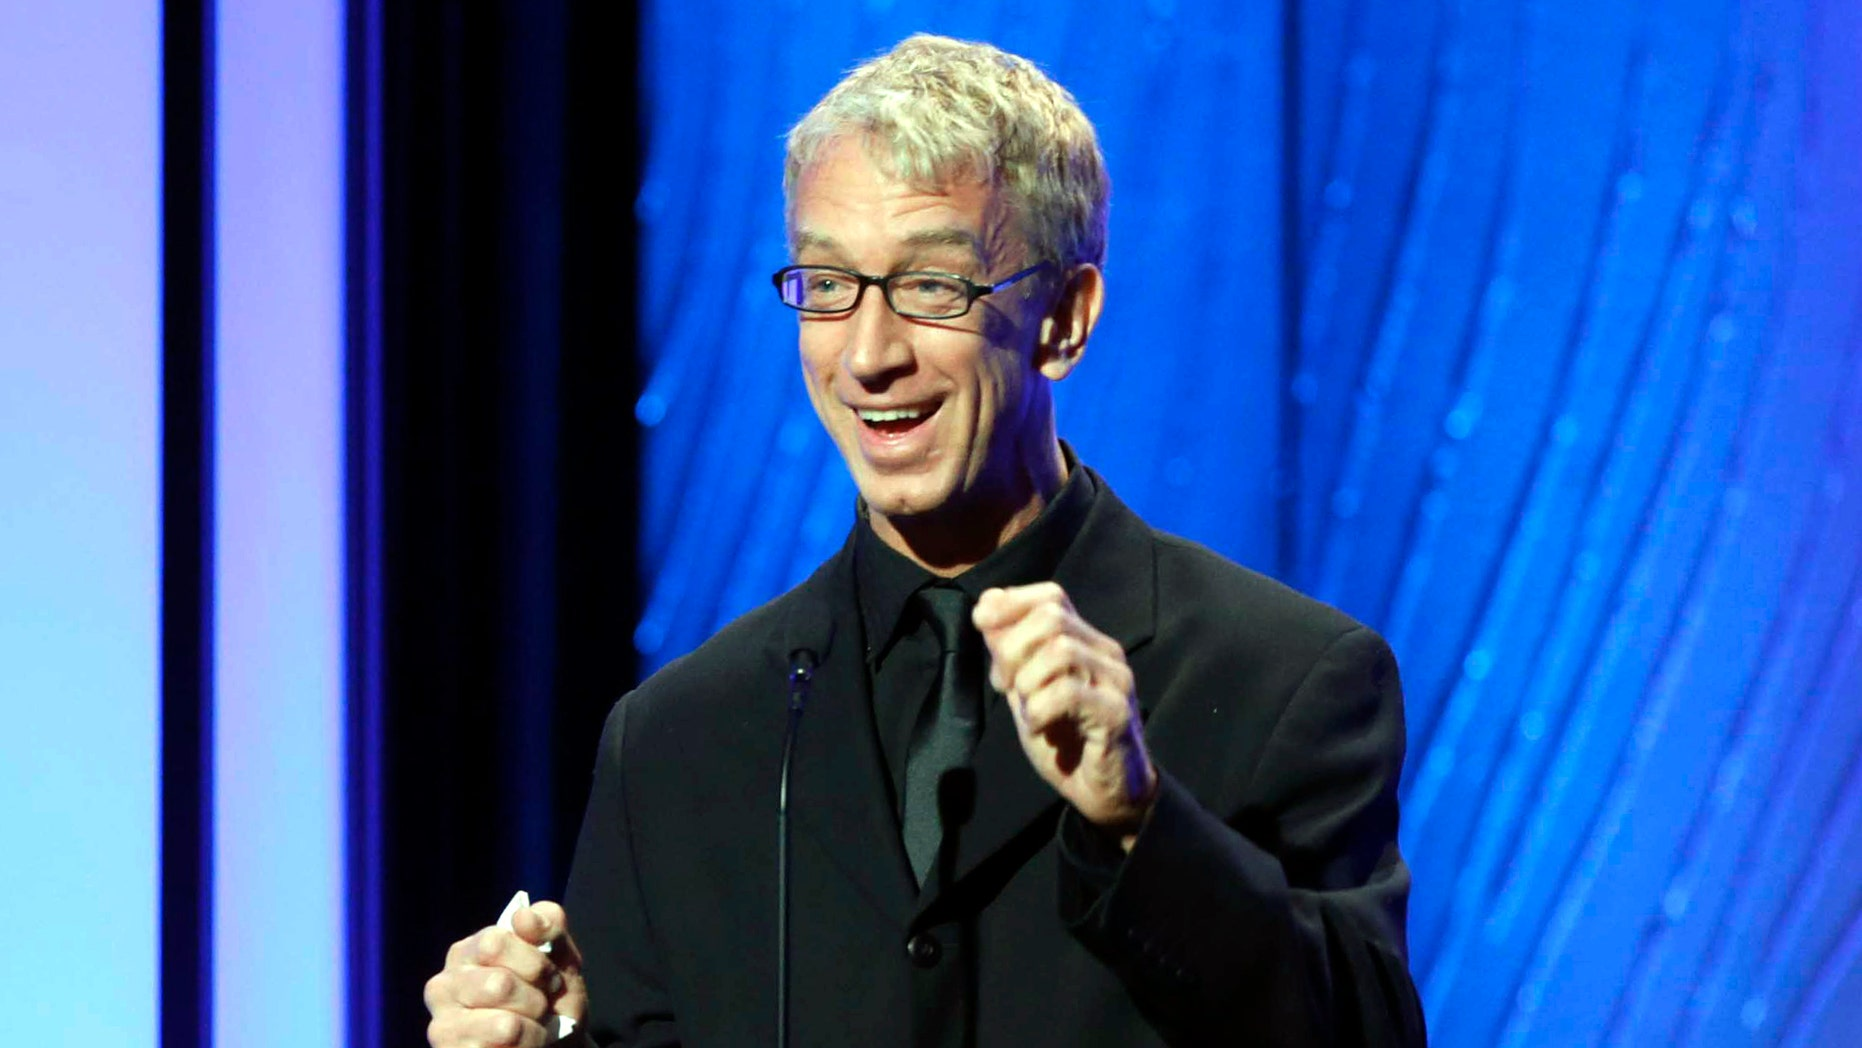 Nov. 15, 2012. Andy Dick speaks onstage during the American Cinematheque 26th Annual Award Presentation to Ben Stiller 2012 in Beverly Hills, Calif.